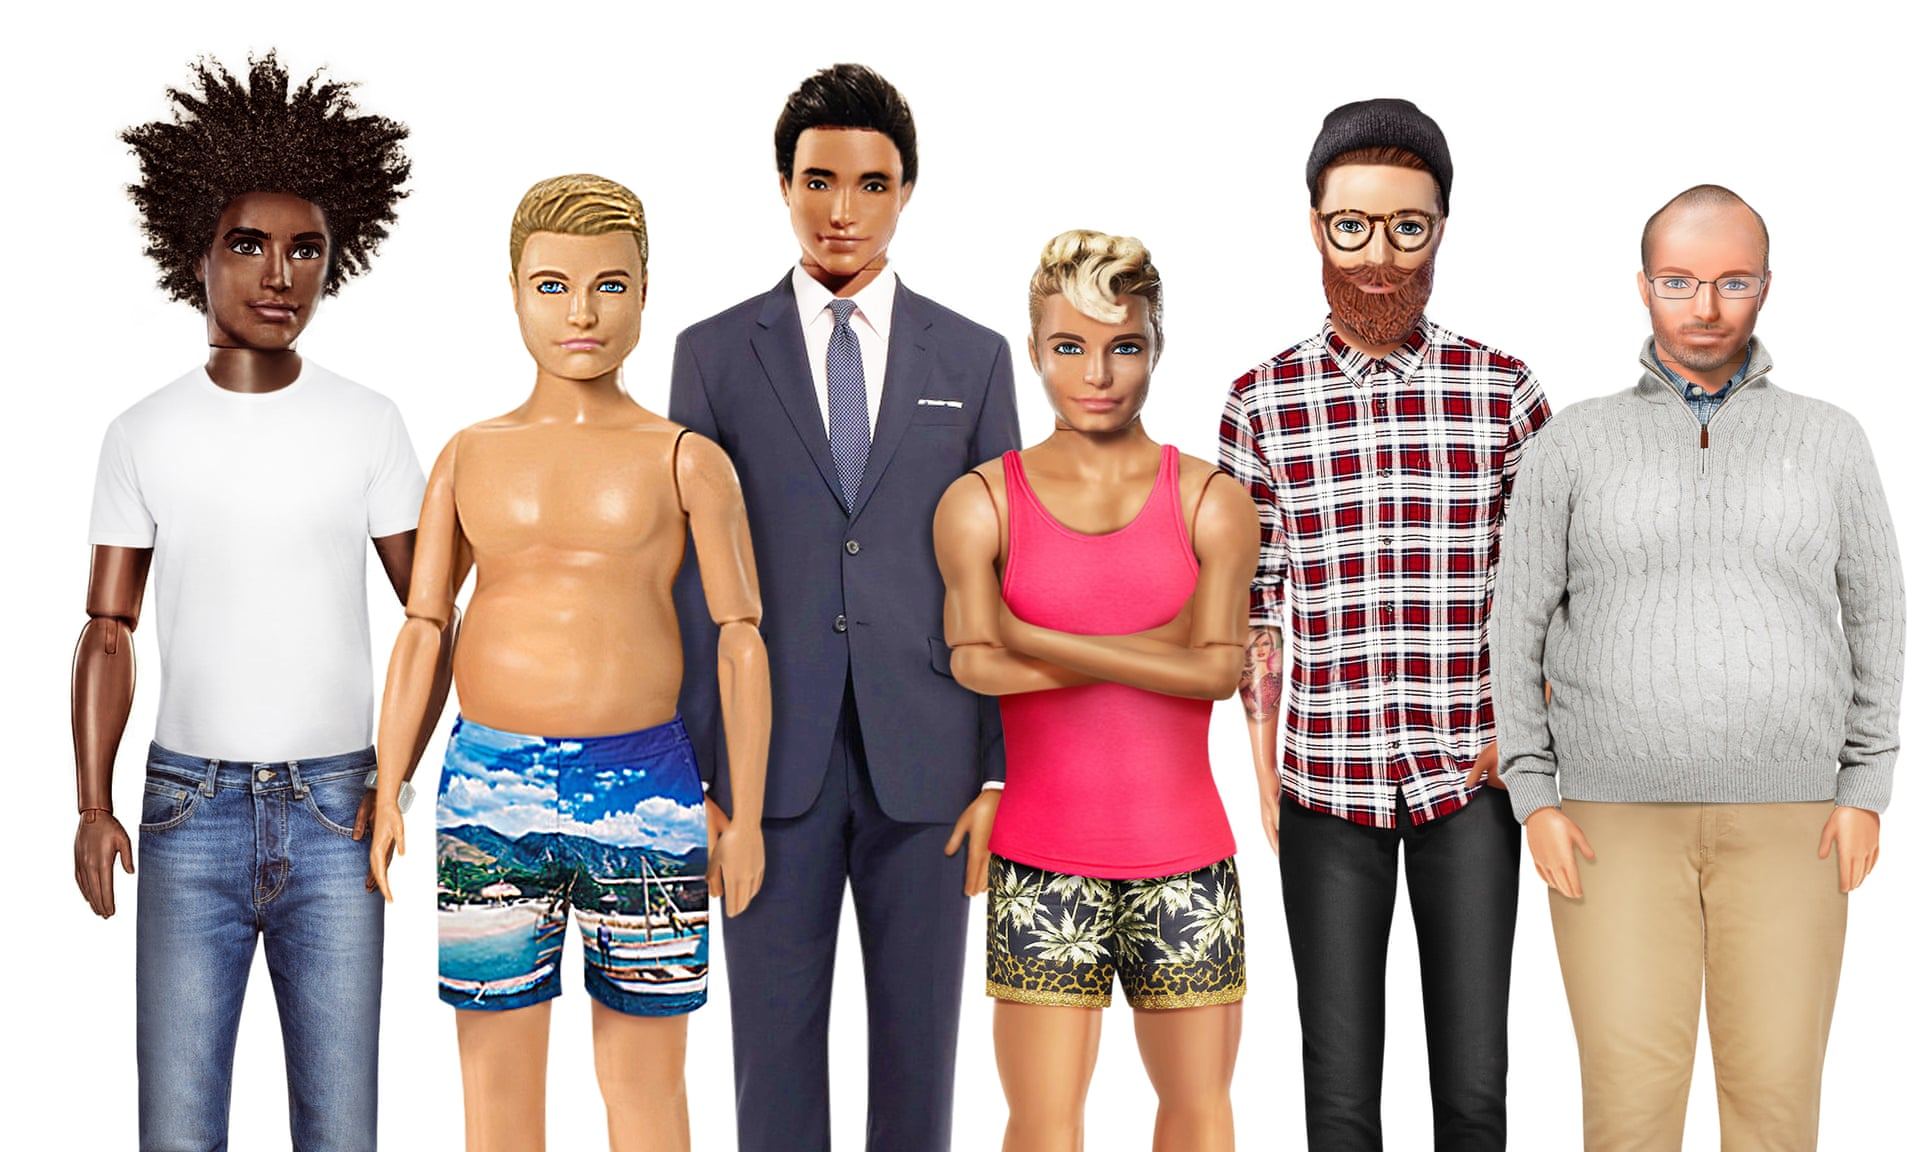 b20cfee169 The line also includes dolls of various heights, skin tones and hair  textures, so if you've ever dreamt of a petite muscular Ken or Ken with an  afro, ...